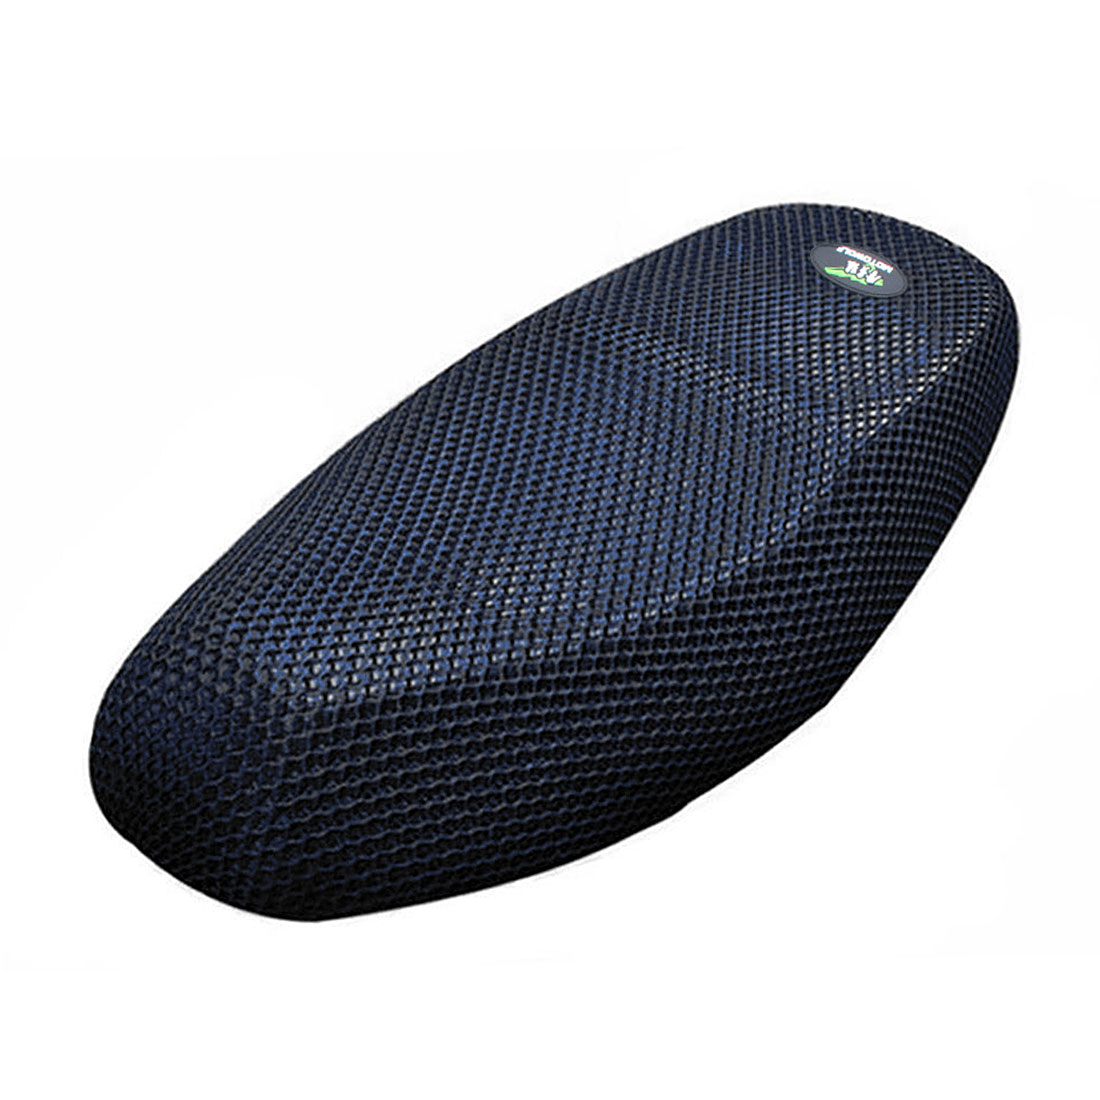 XL 3D Motorcycle Scooter Moped Seat Cover Breathable Mesh Net Cushion Black Blue